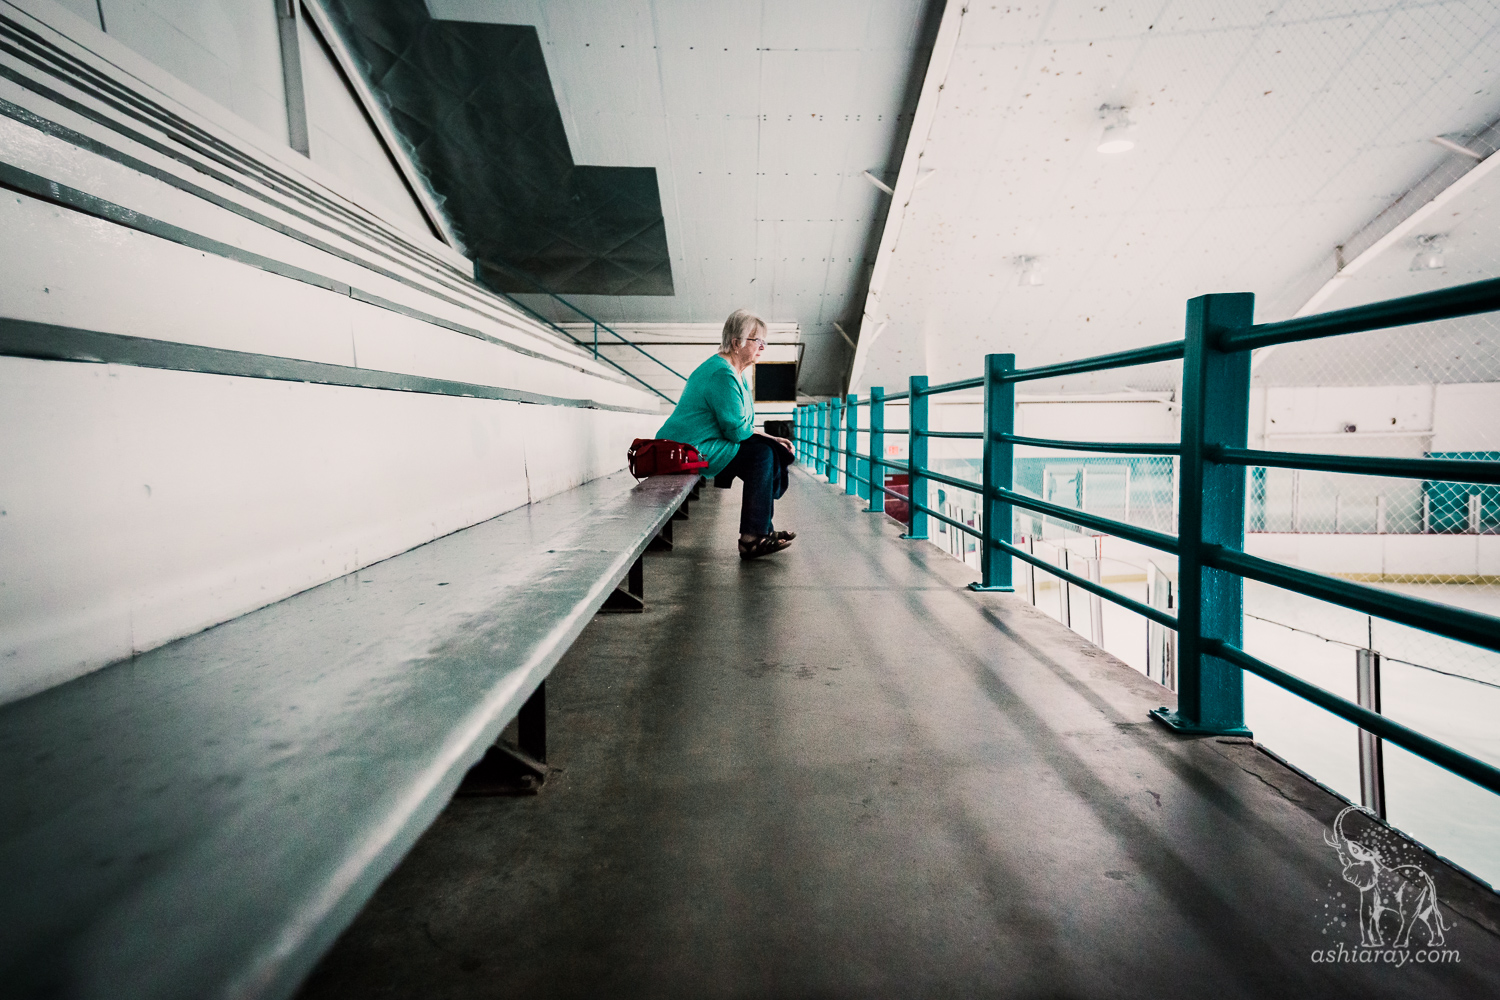 Grandmother sitting alone in hockey rink